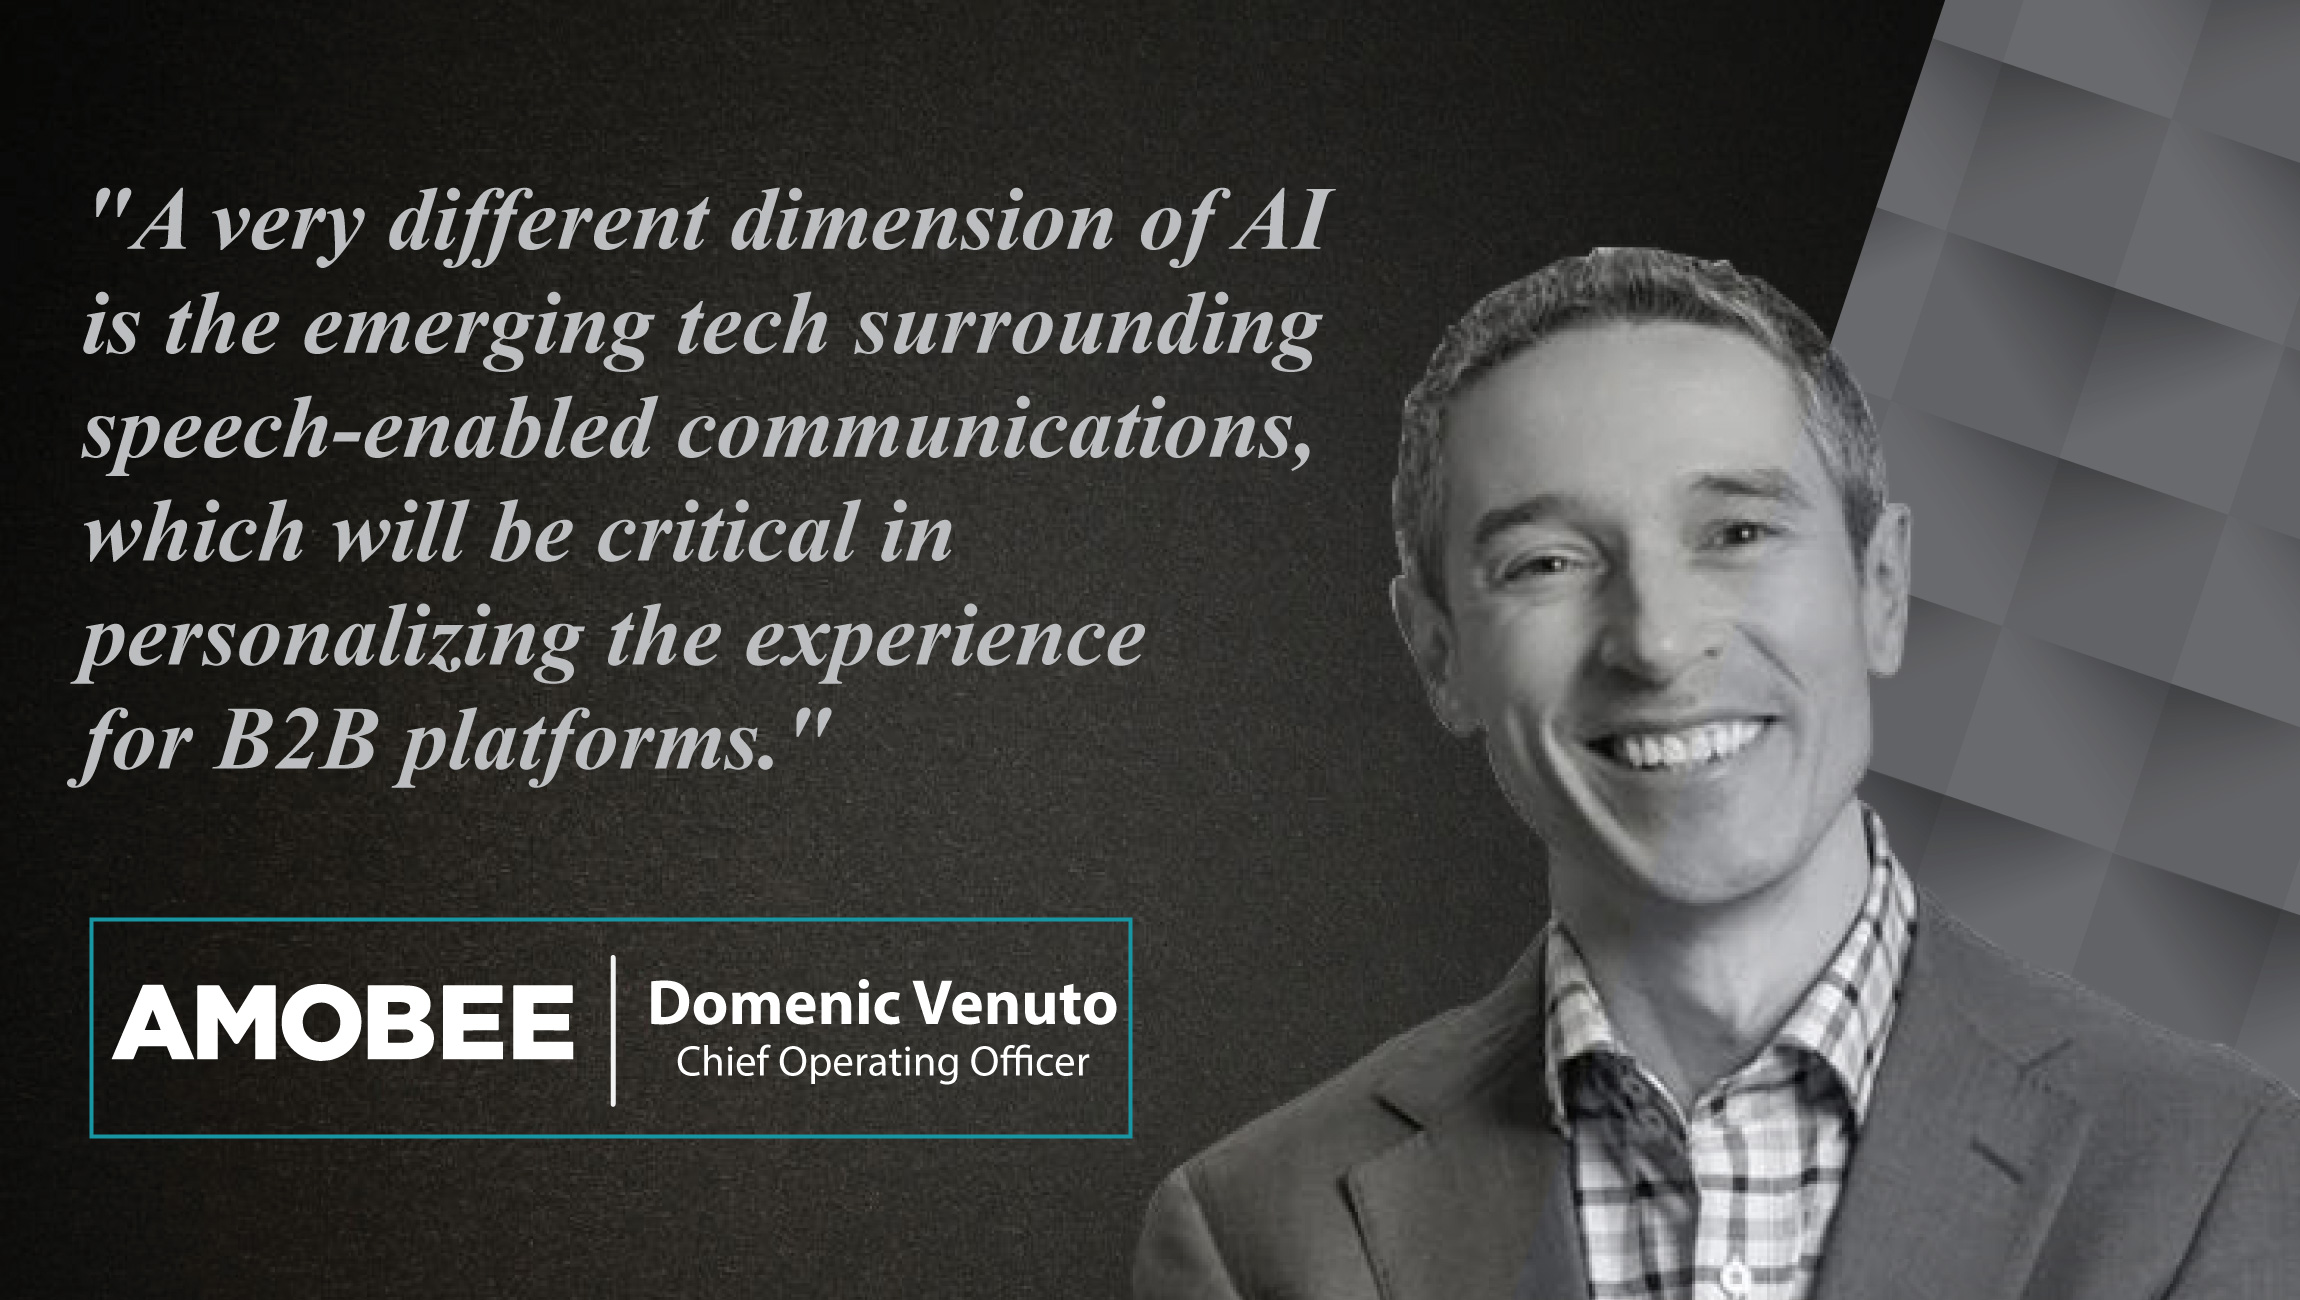 Domenic Venuto, Chief Operating Officer of Amobee